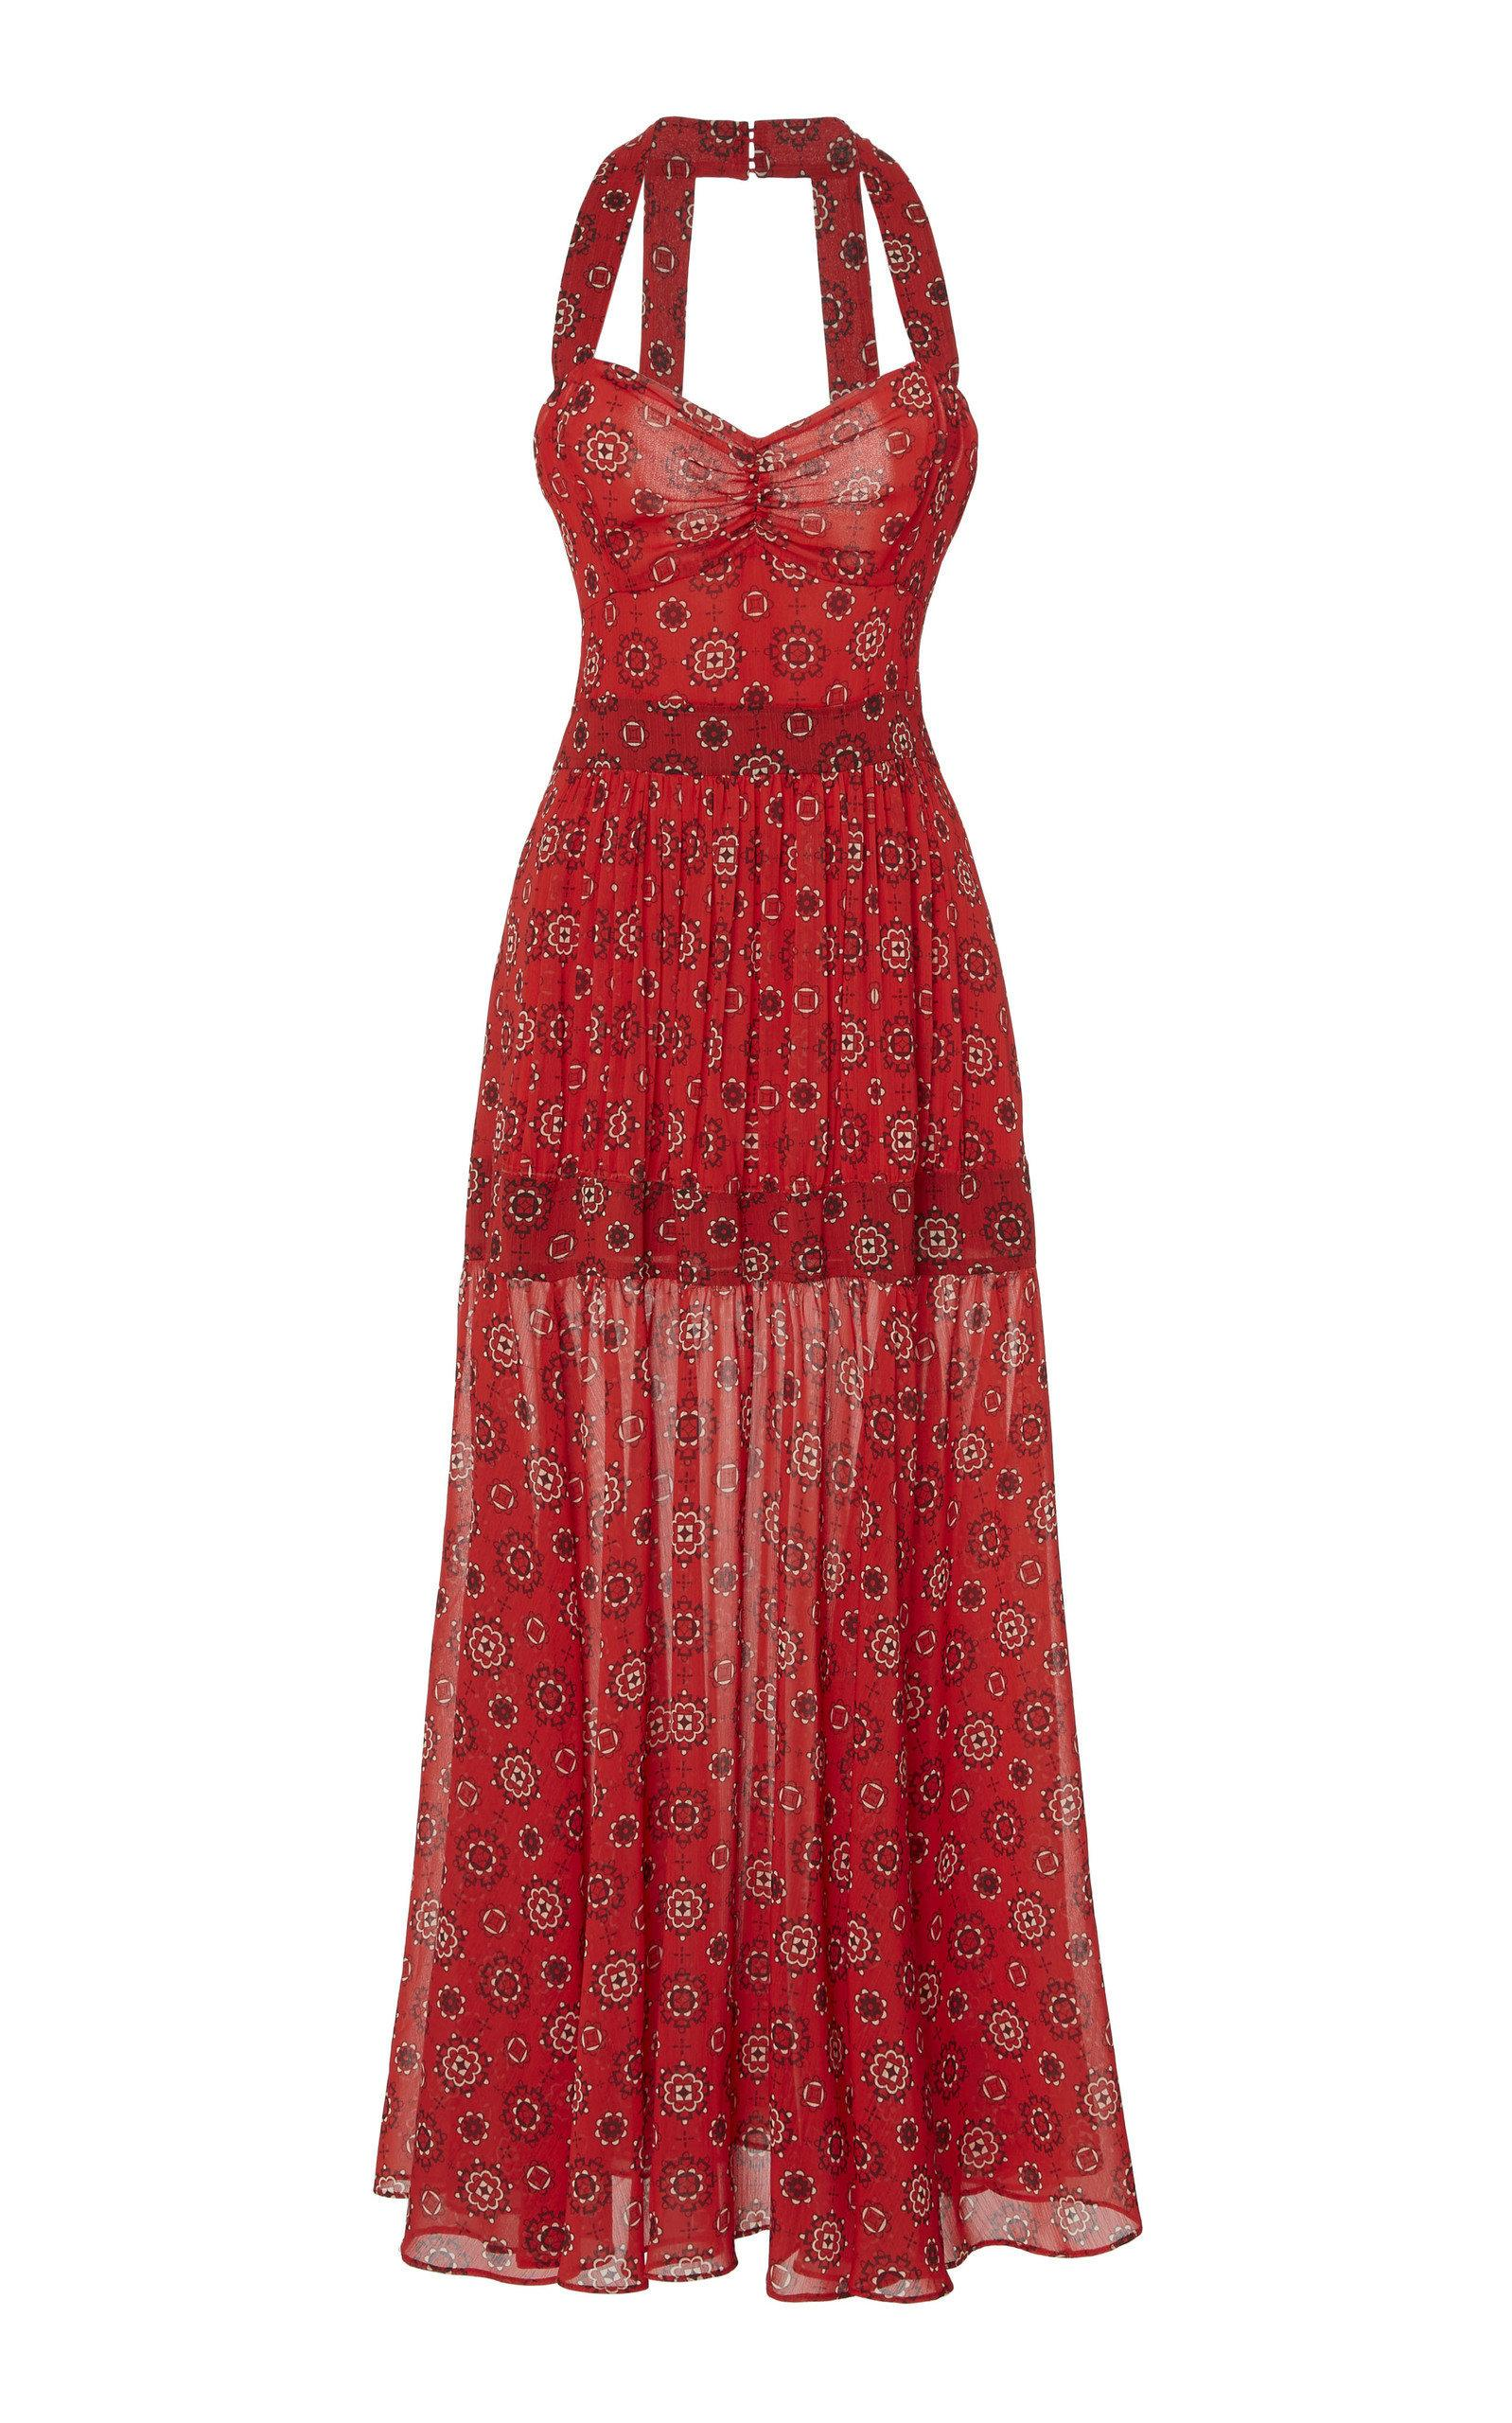 Marissa Webb Seraphina Print Dress